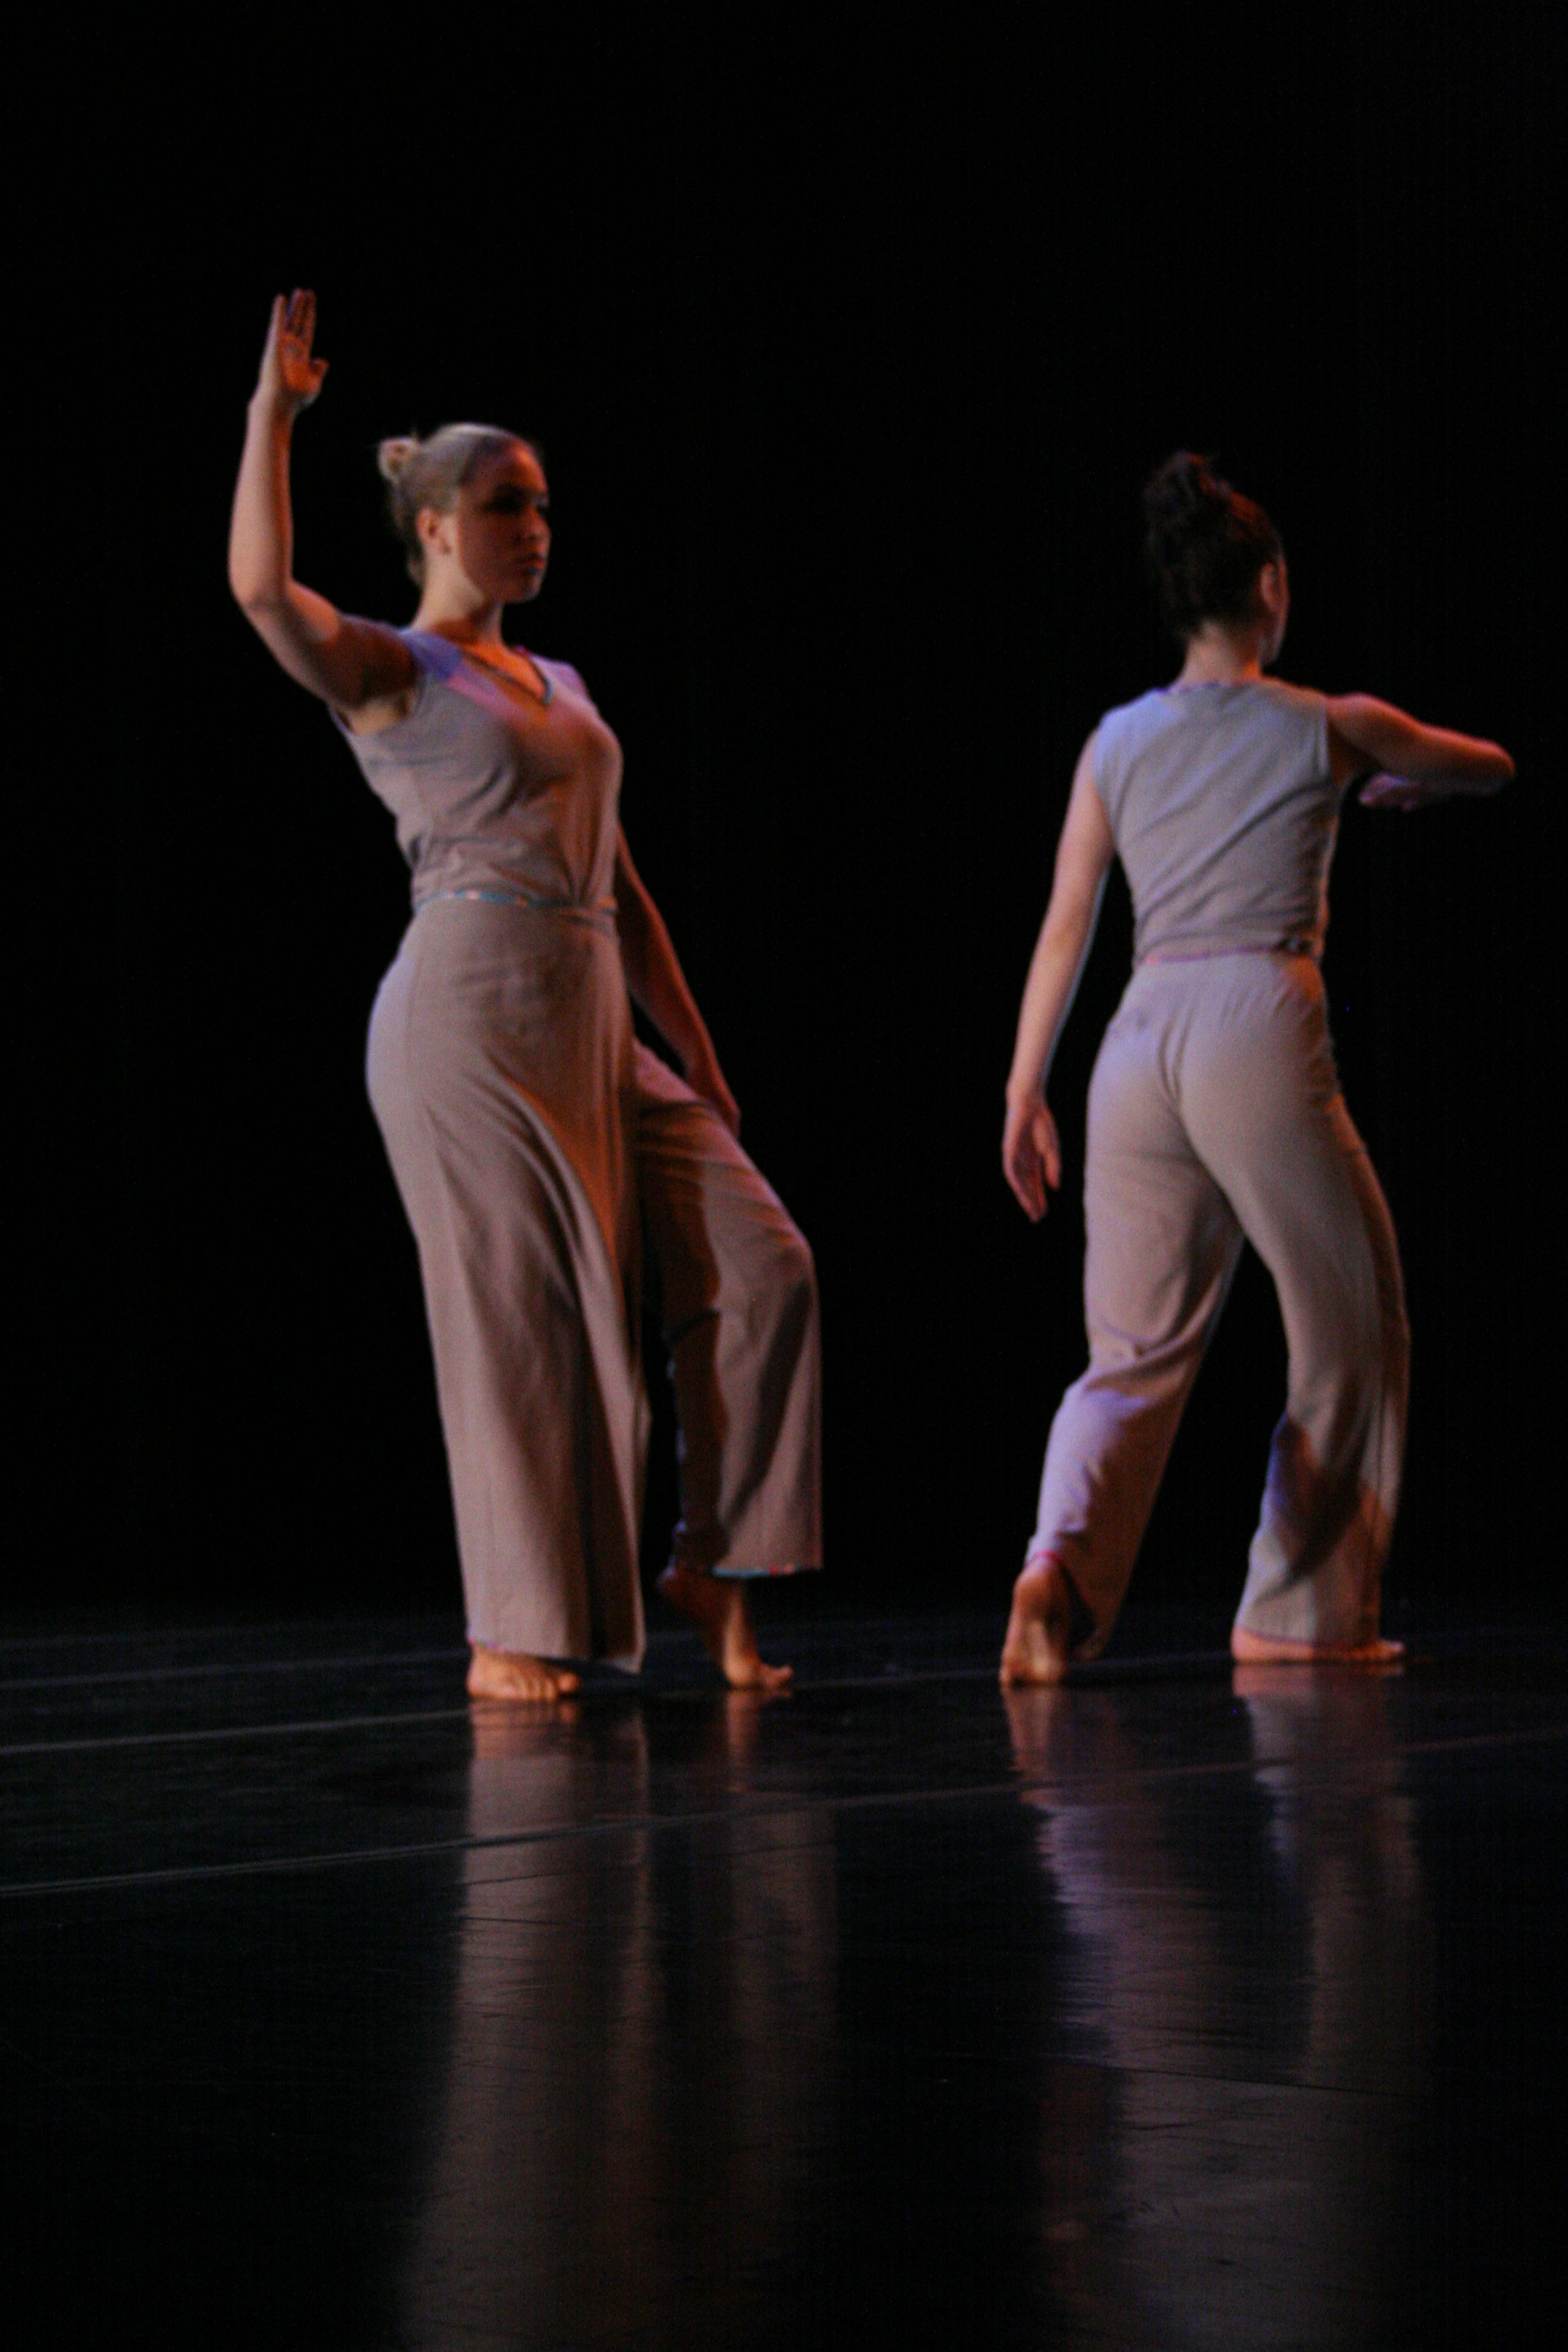 Dance_Dwtn_Remix_Culture_2010 (366 of 1423).JPG